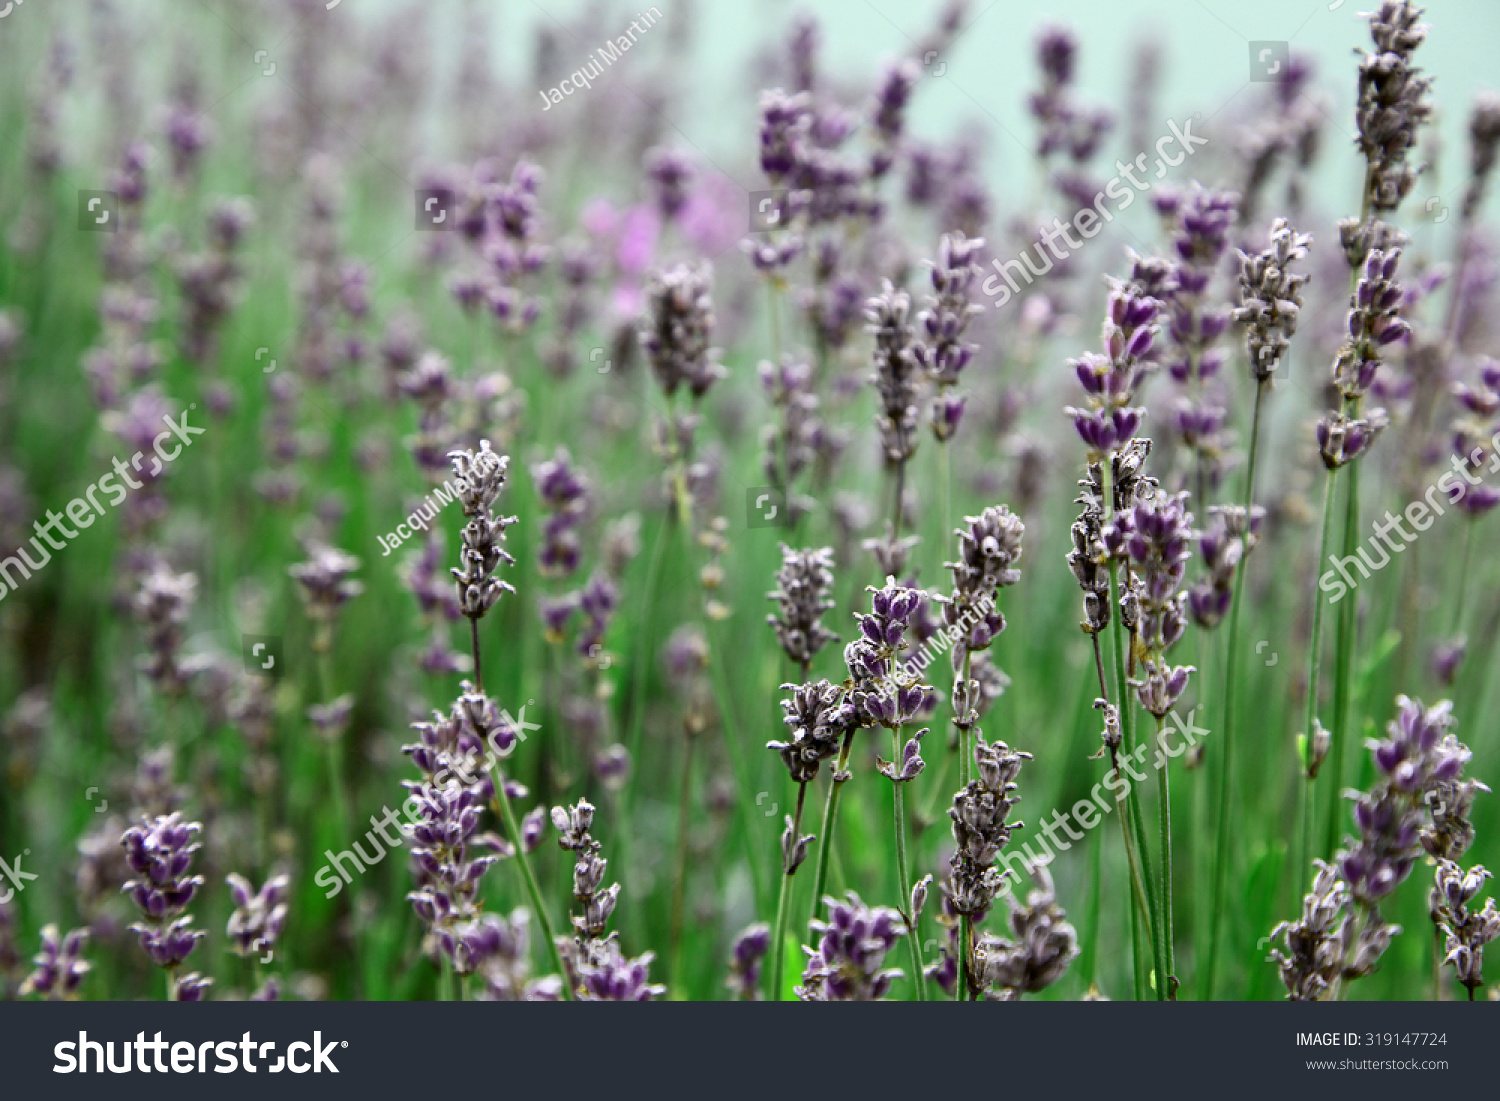 Beautiful lavender flowers green leaves stock photo edit now beautiful lavender flowers with green leaves izmirmasajfo